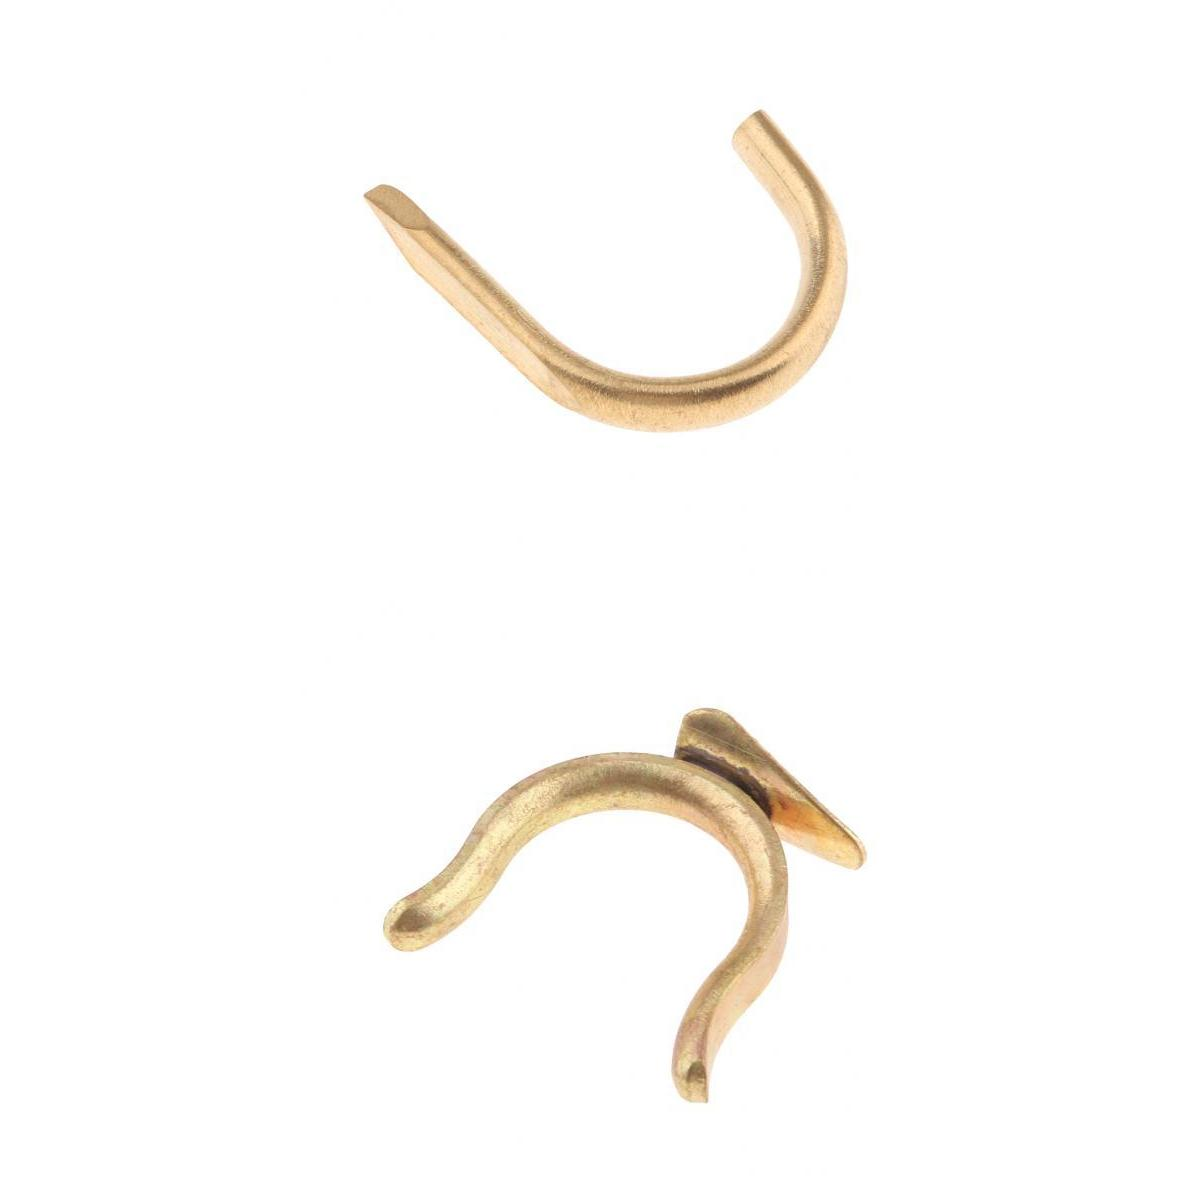 2Pcs Trumpet Thumb Hook Fits For Music Beginners And School Students Band